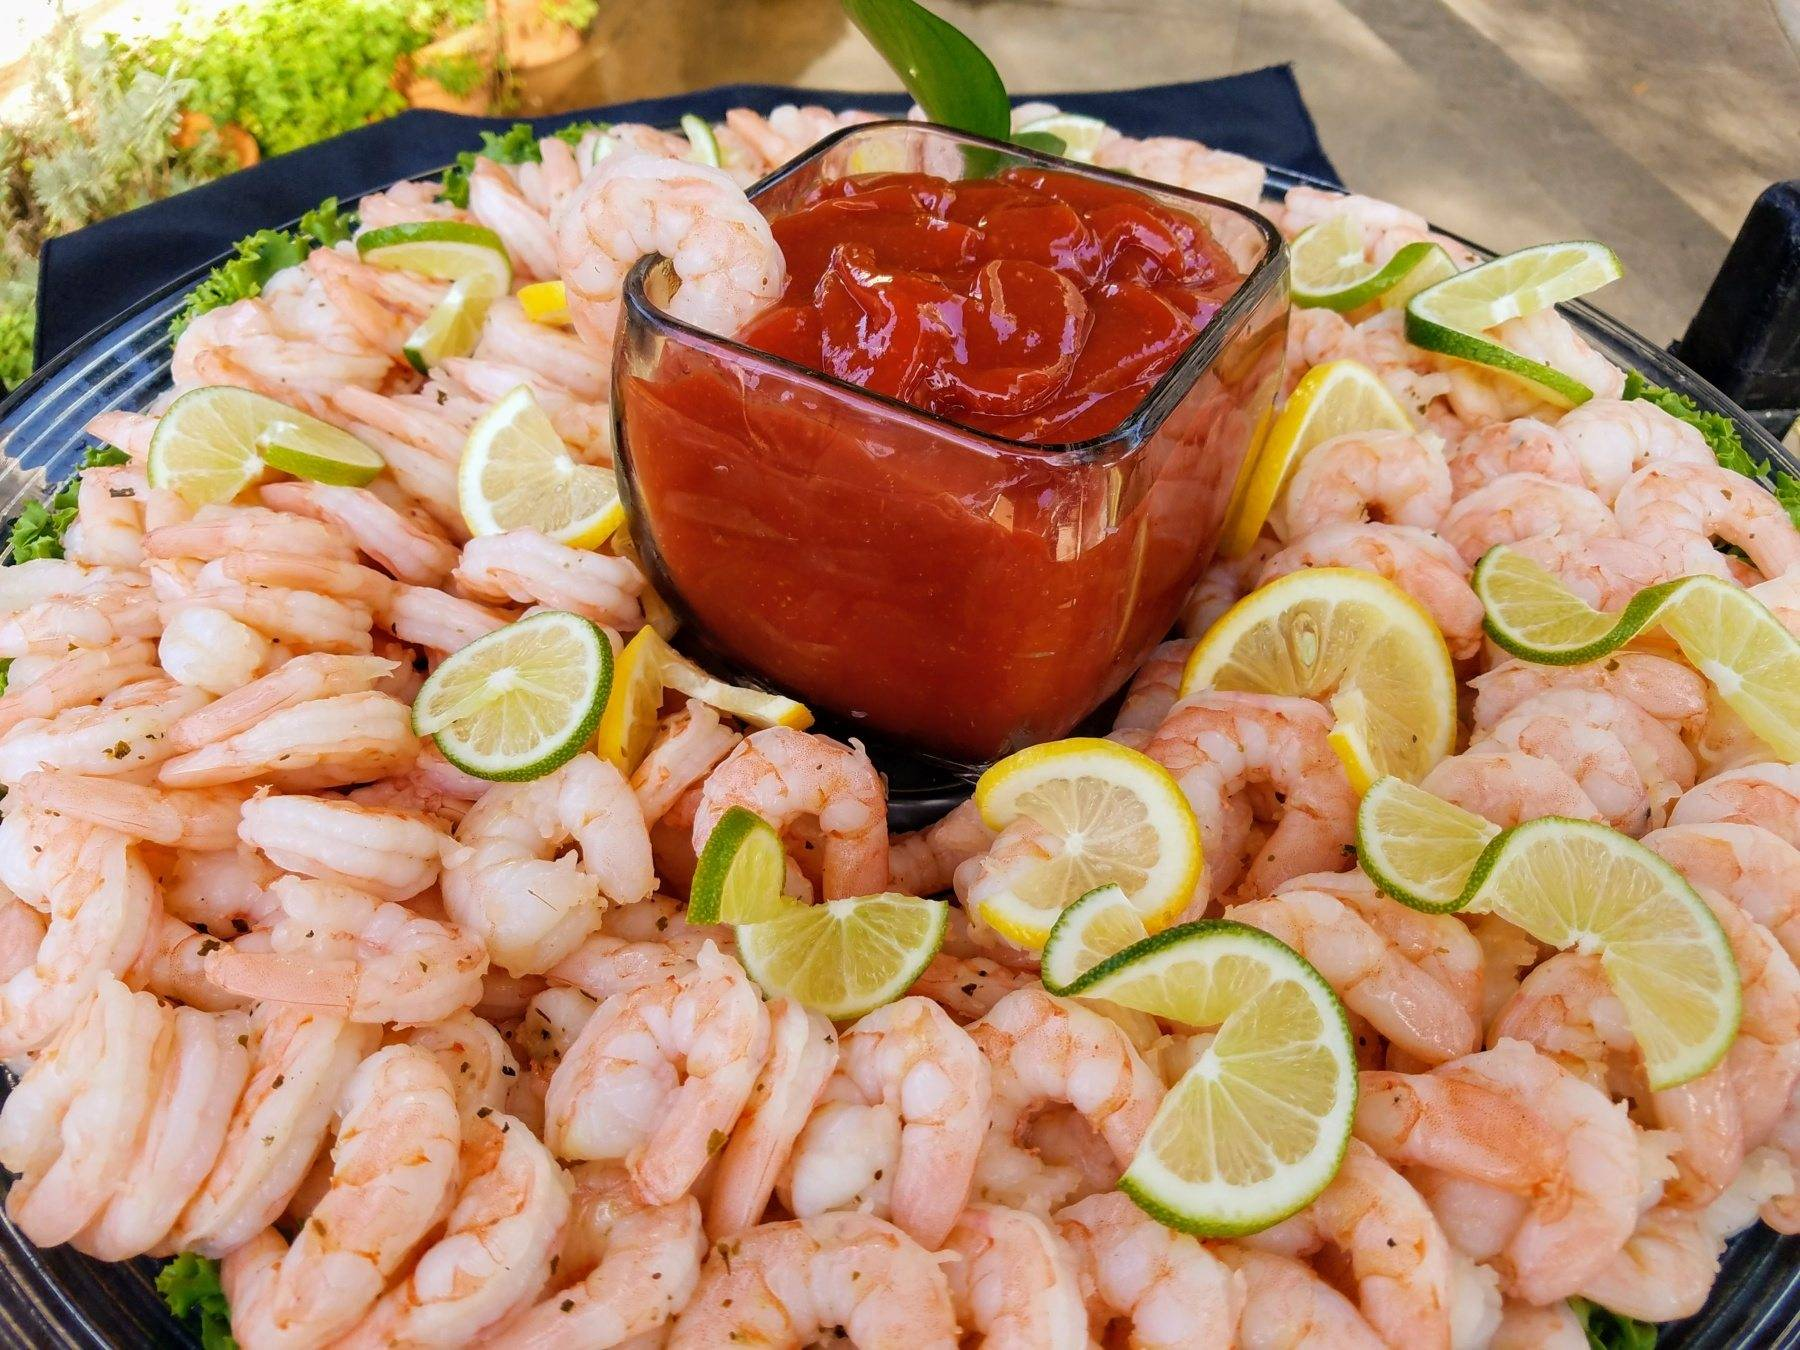 Shrimp Plastter with Cocktail Sauce